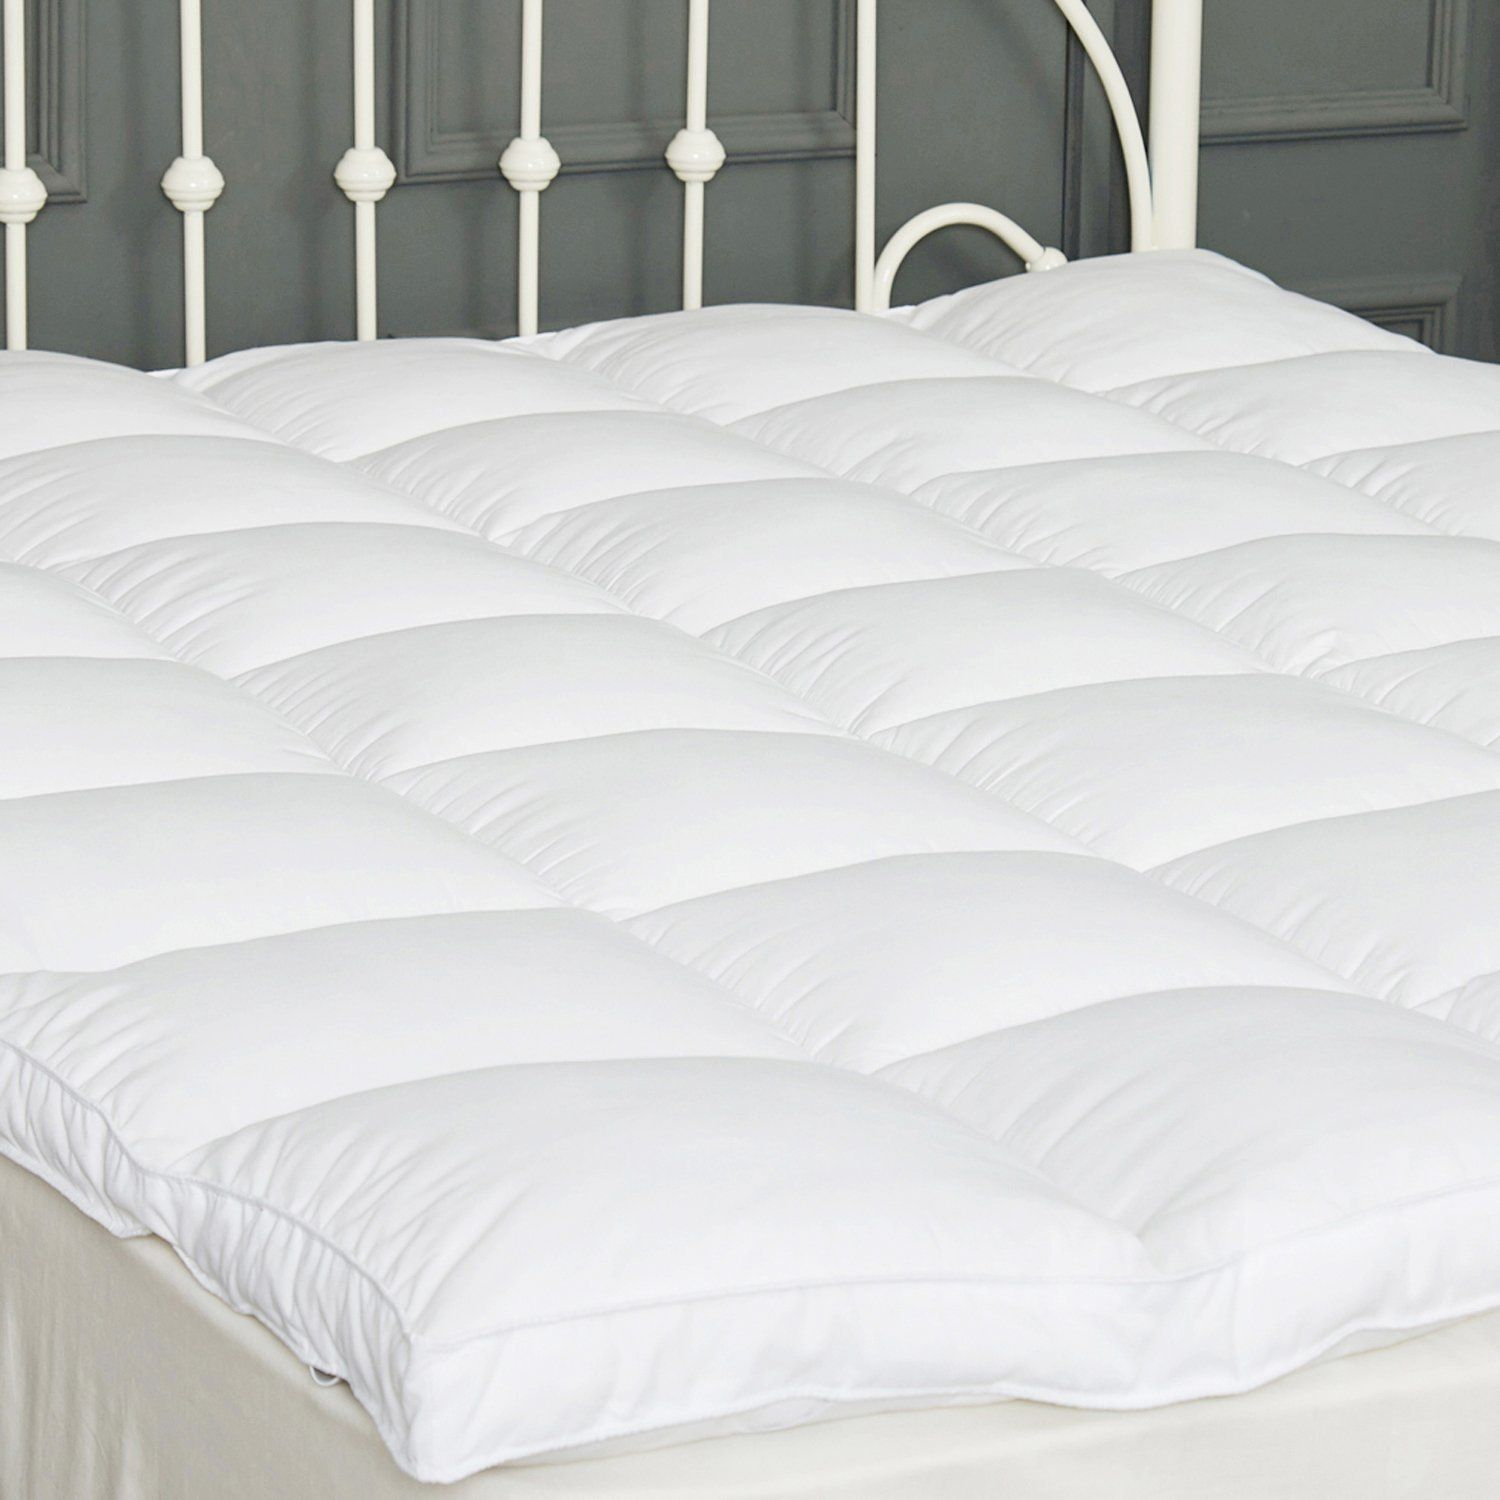 manchester big by pillow sleep house australia topper mattress